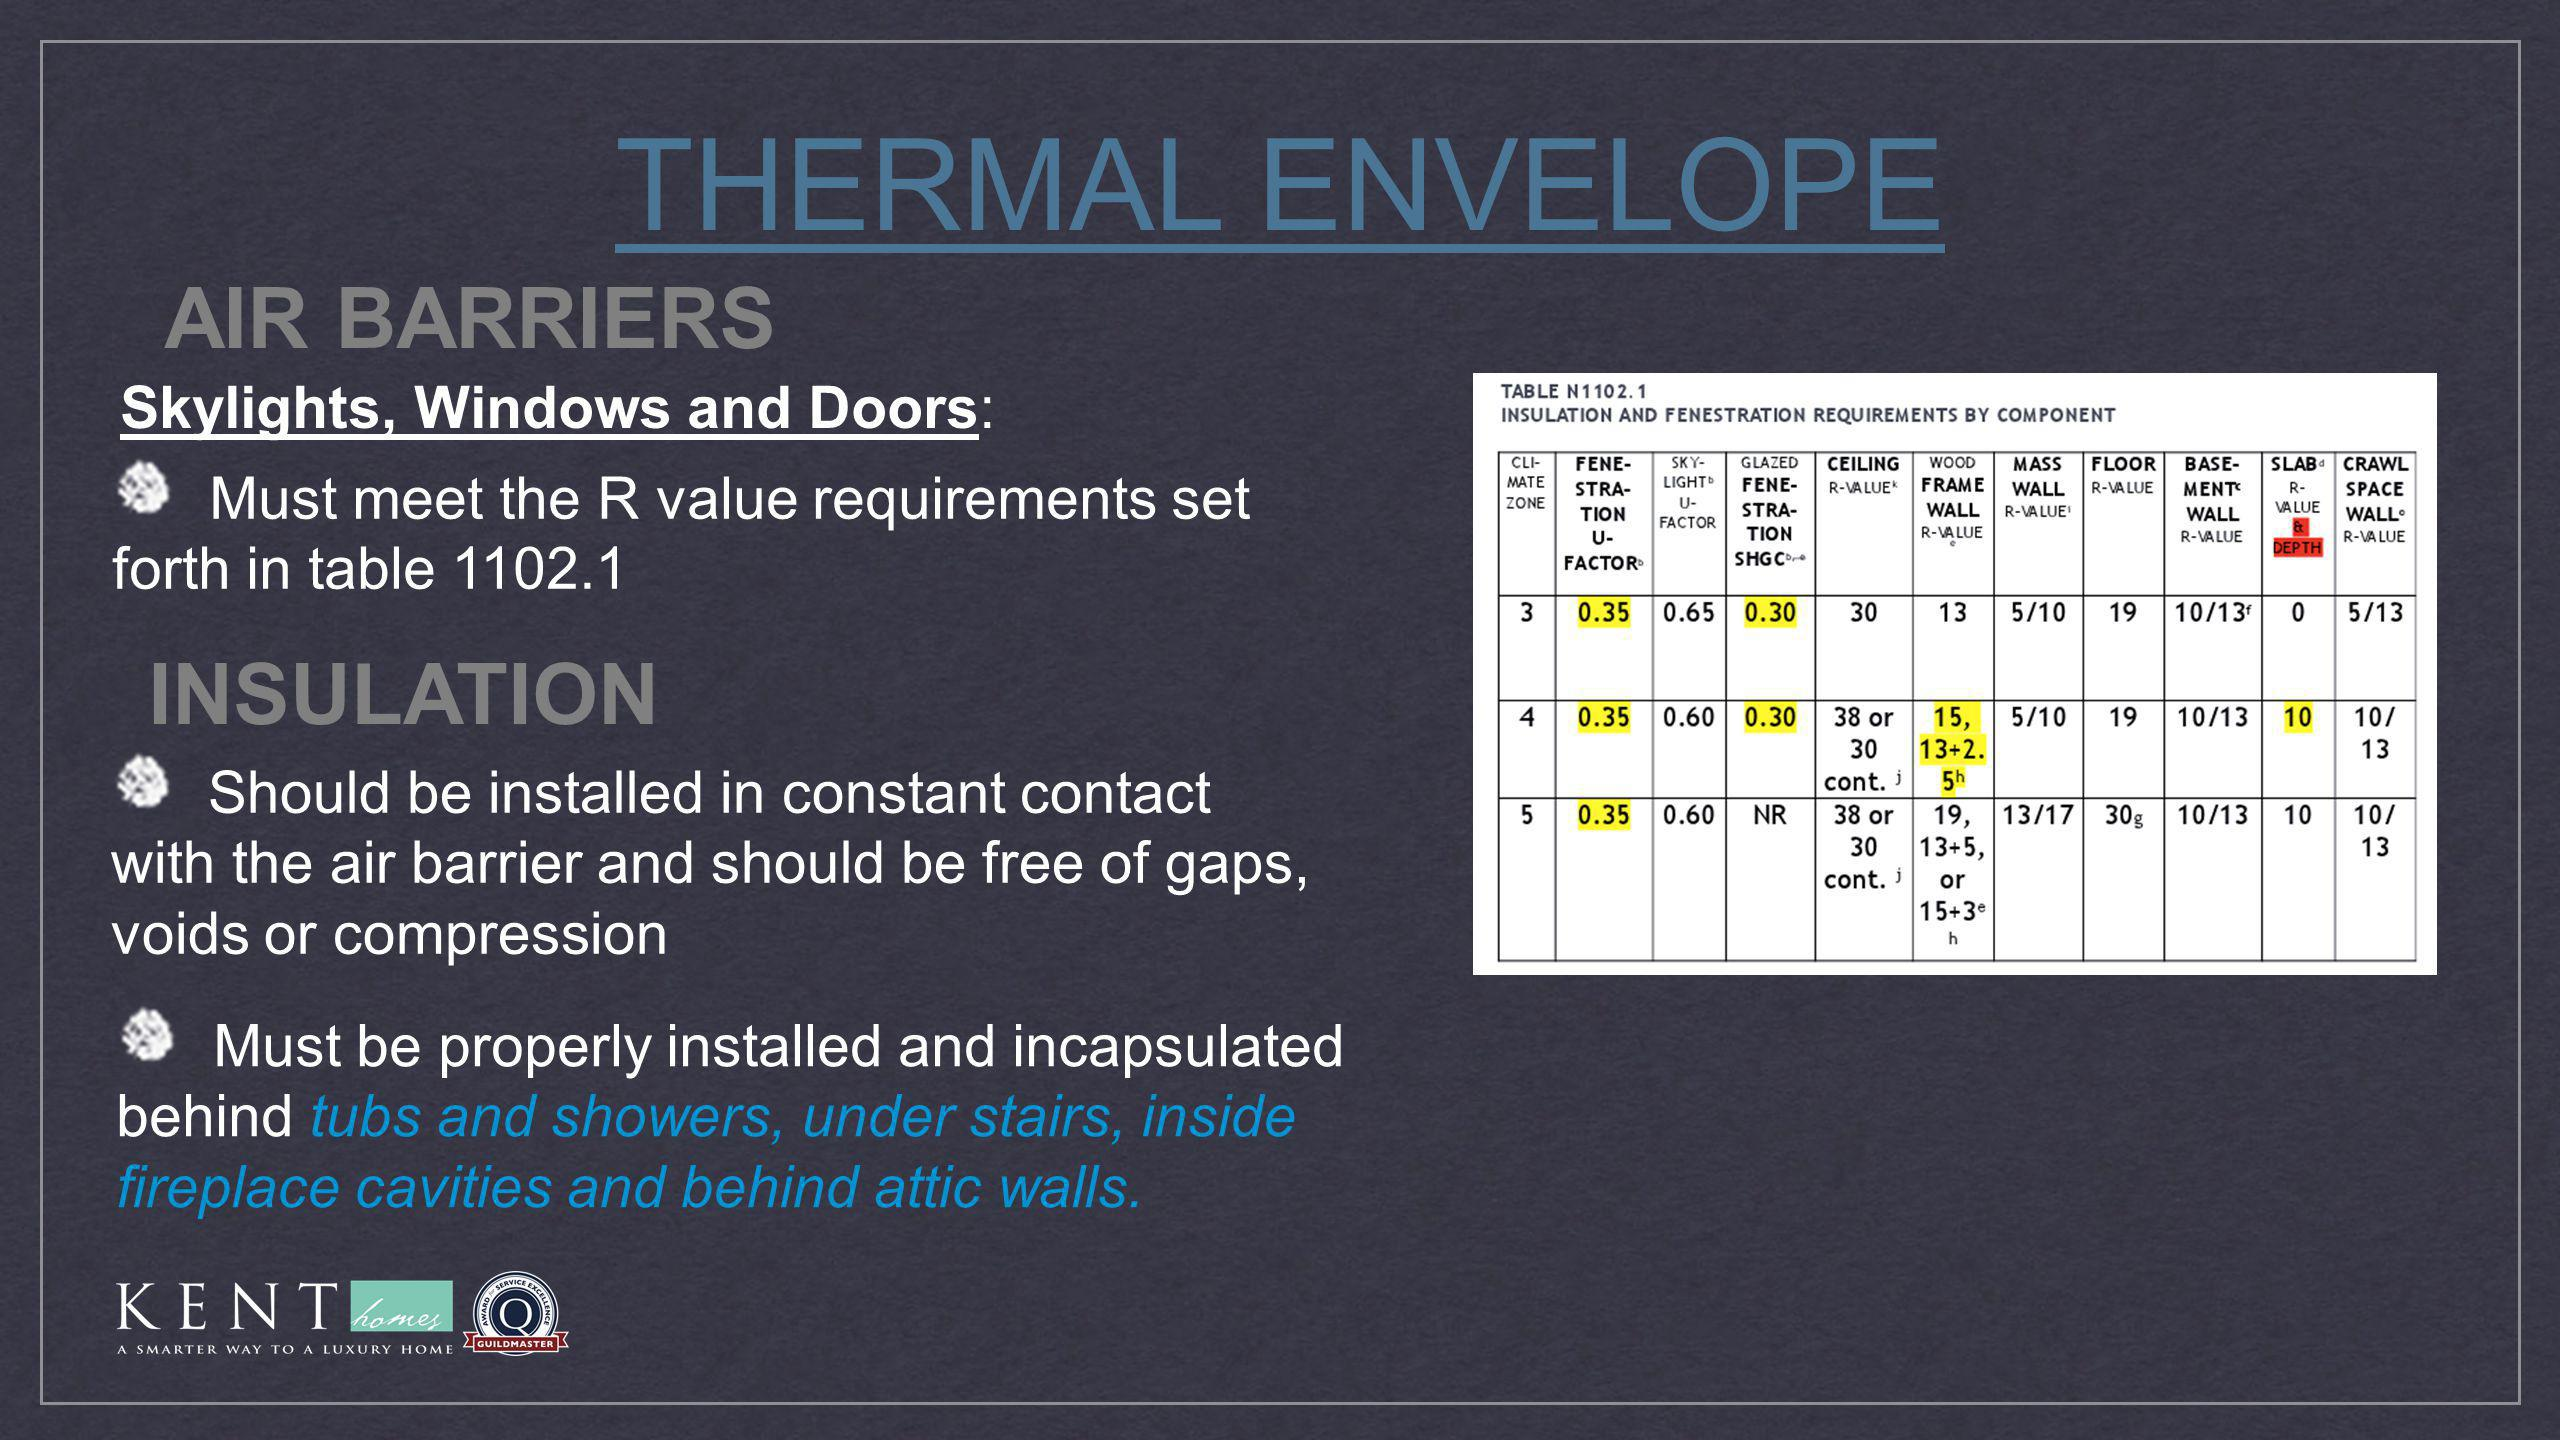 THERMAL ENVELOPE Must meet the R value requirements set forth in table 1102.1 Should be installed in constant contact with the air barrier and should